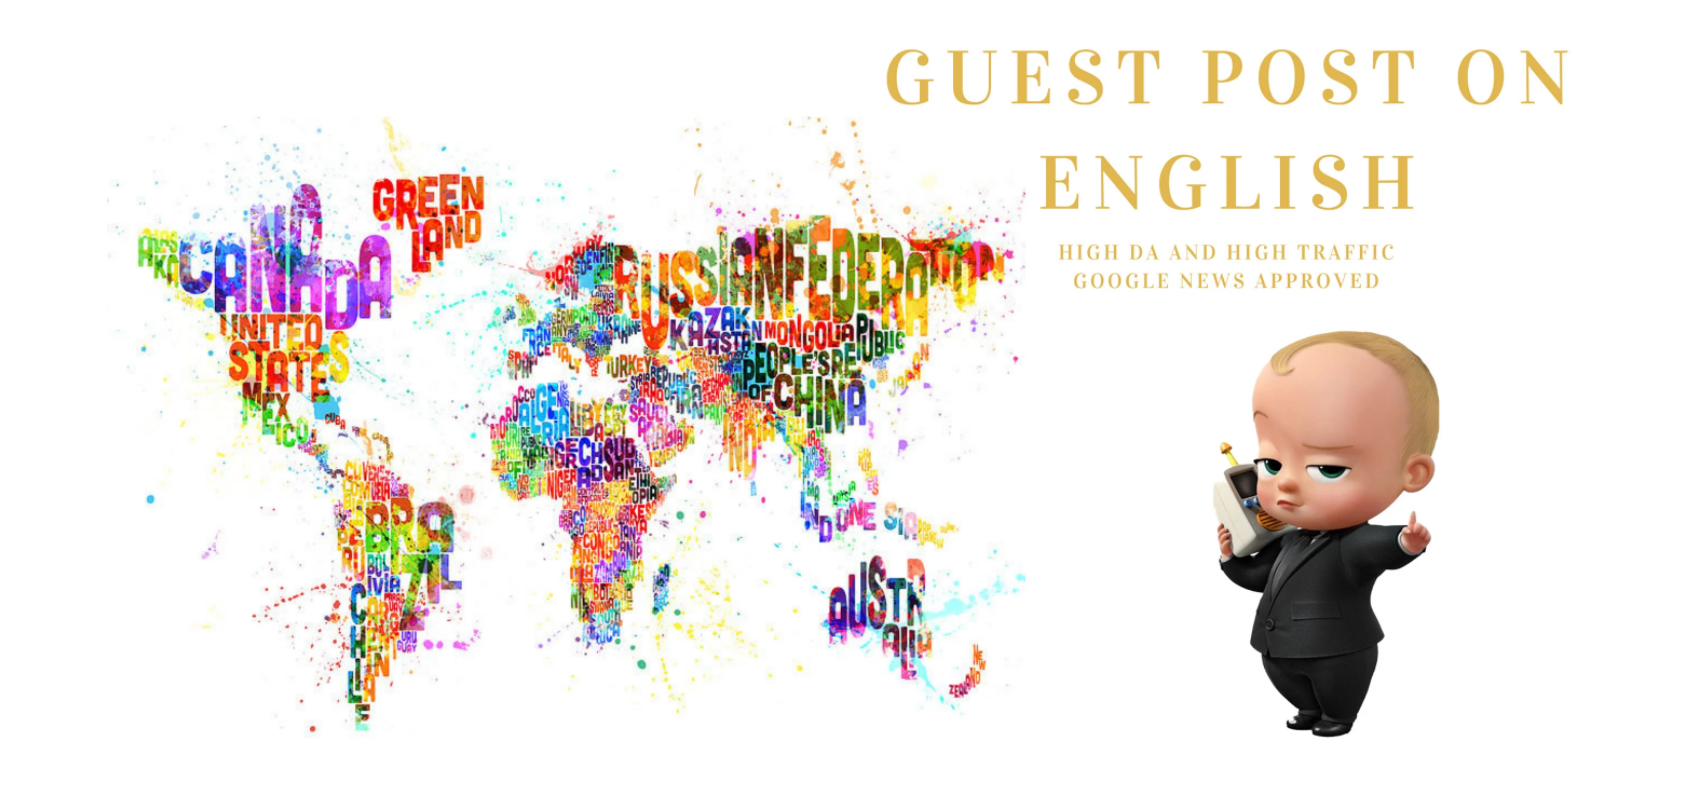 Do Guest post on English sites